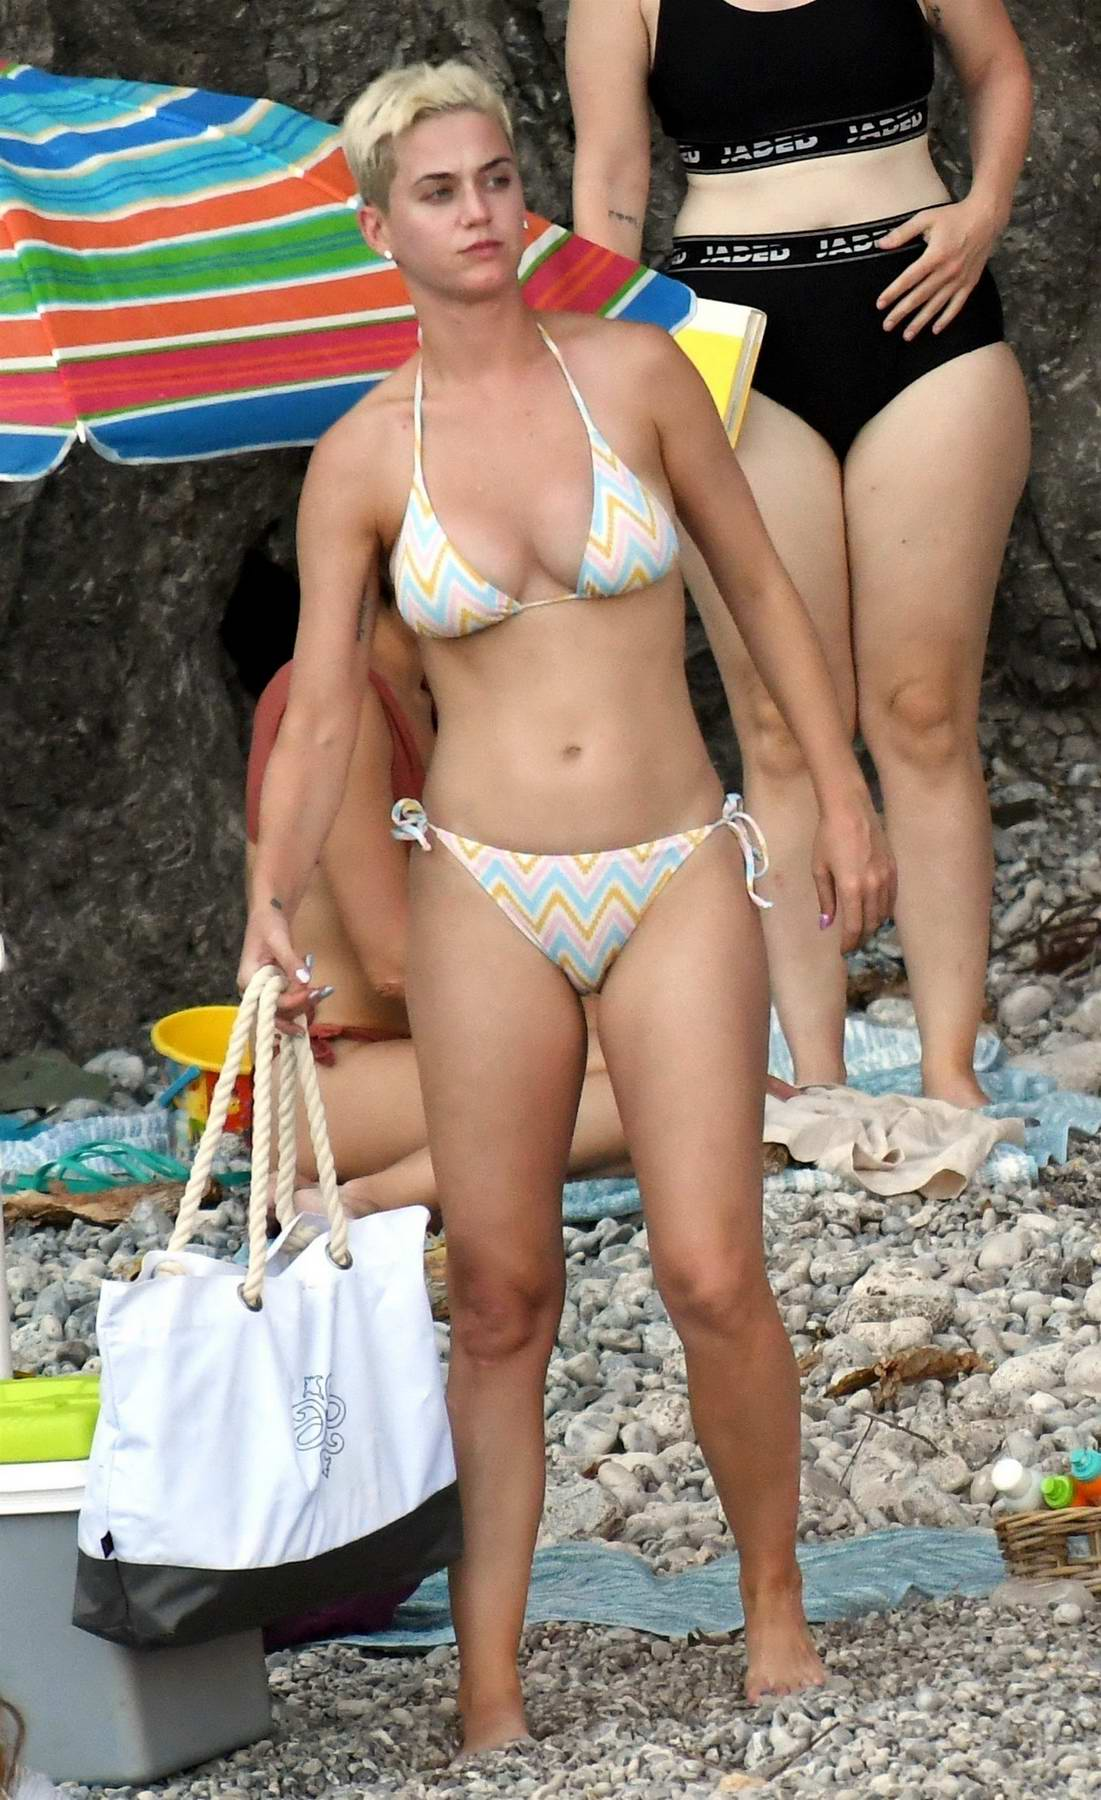 Katy Perry parties with her friends in a bikini at the beach in Amalfi Coast, Italy